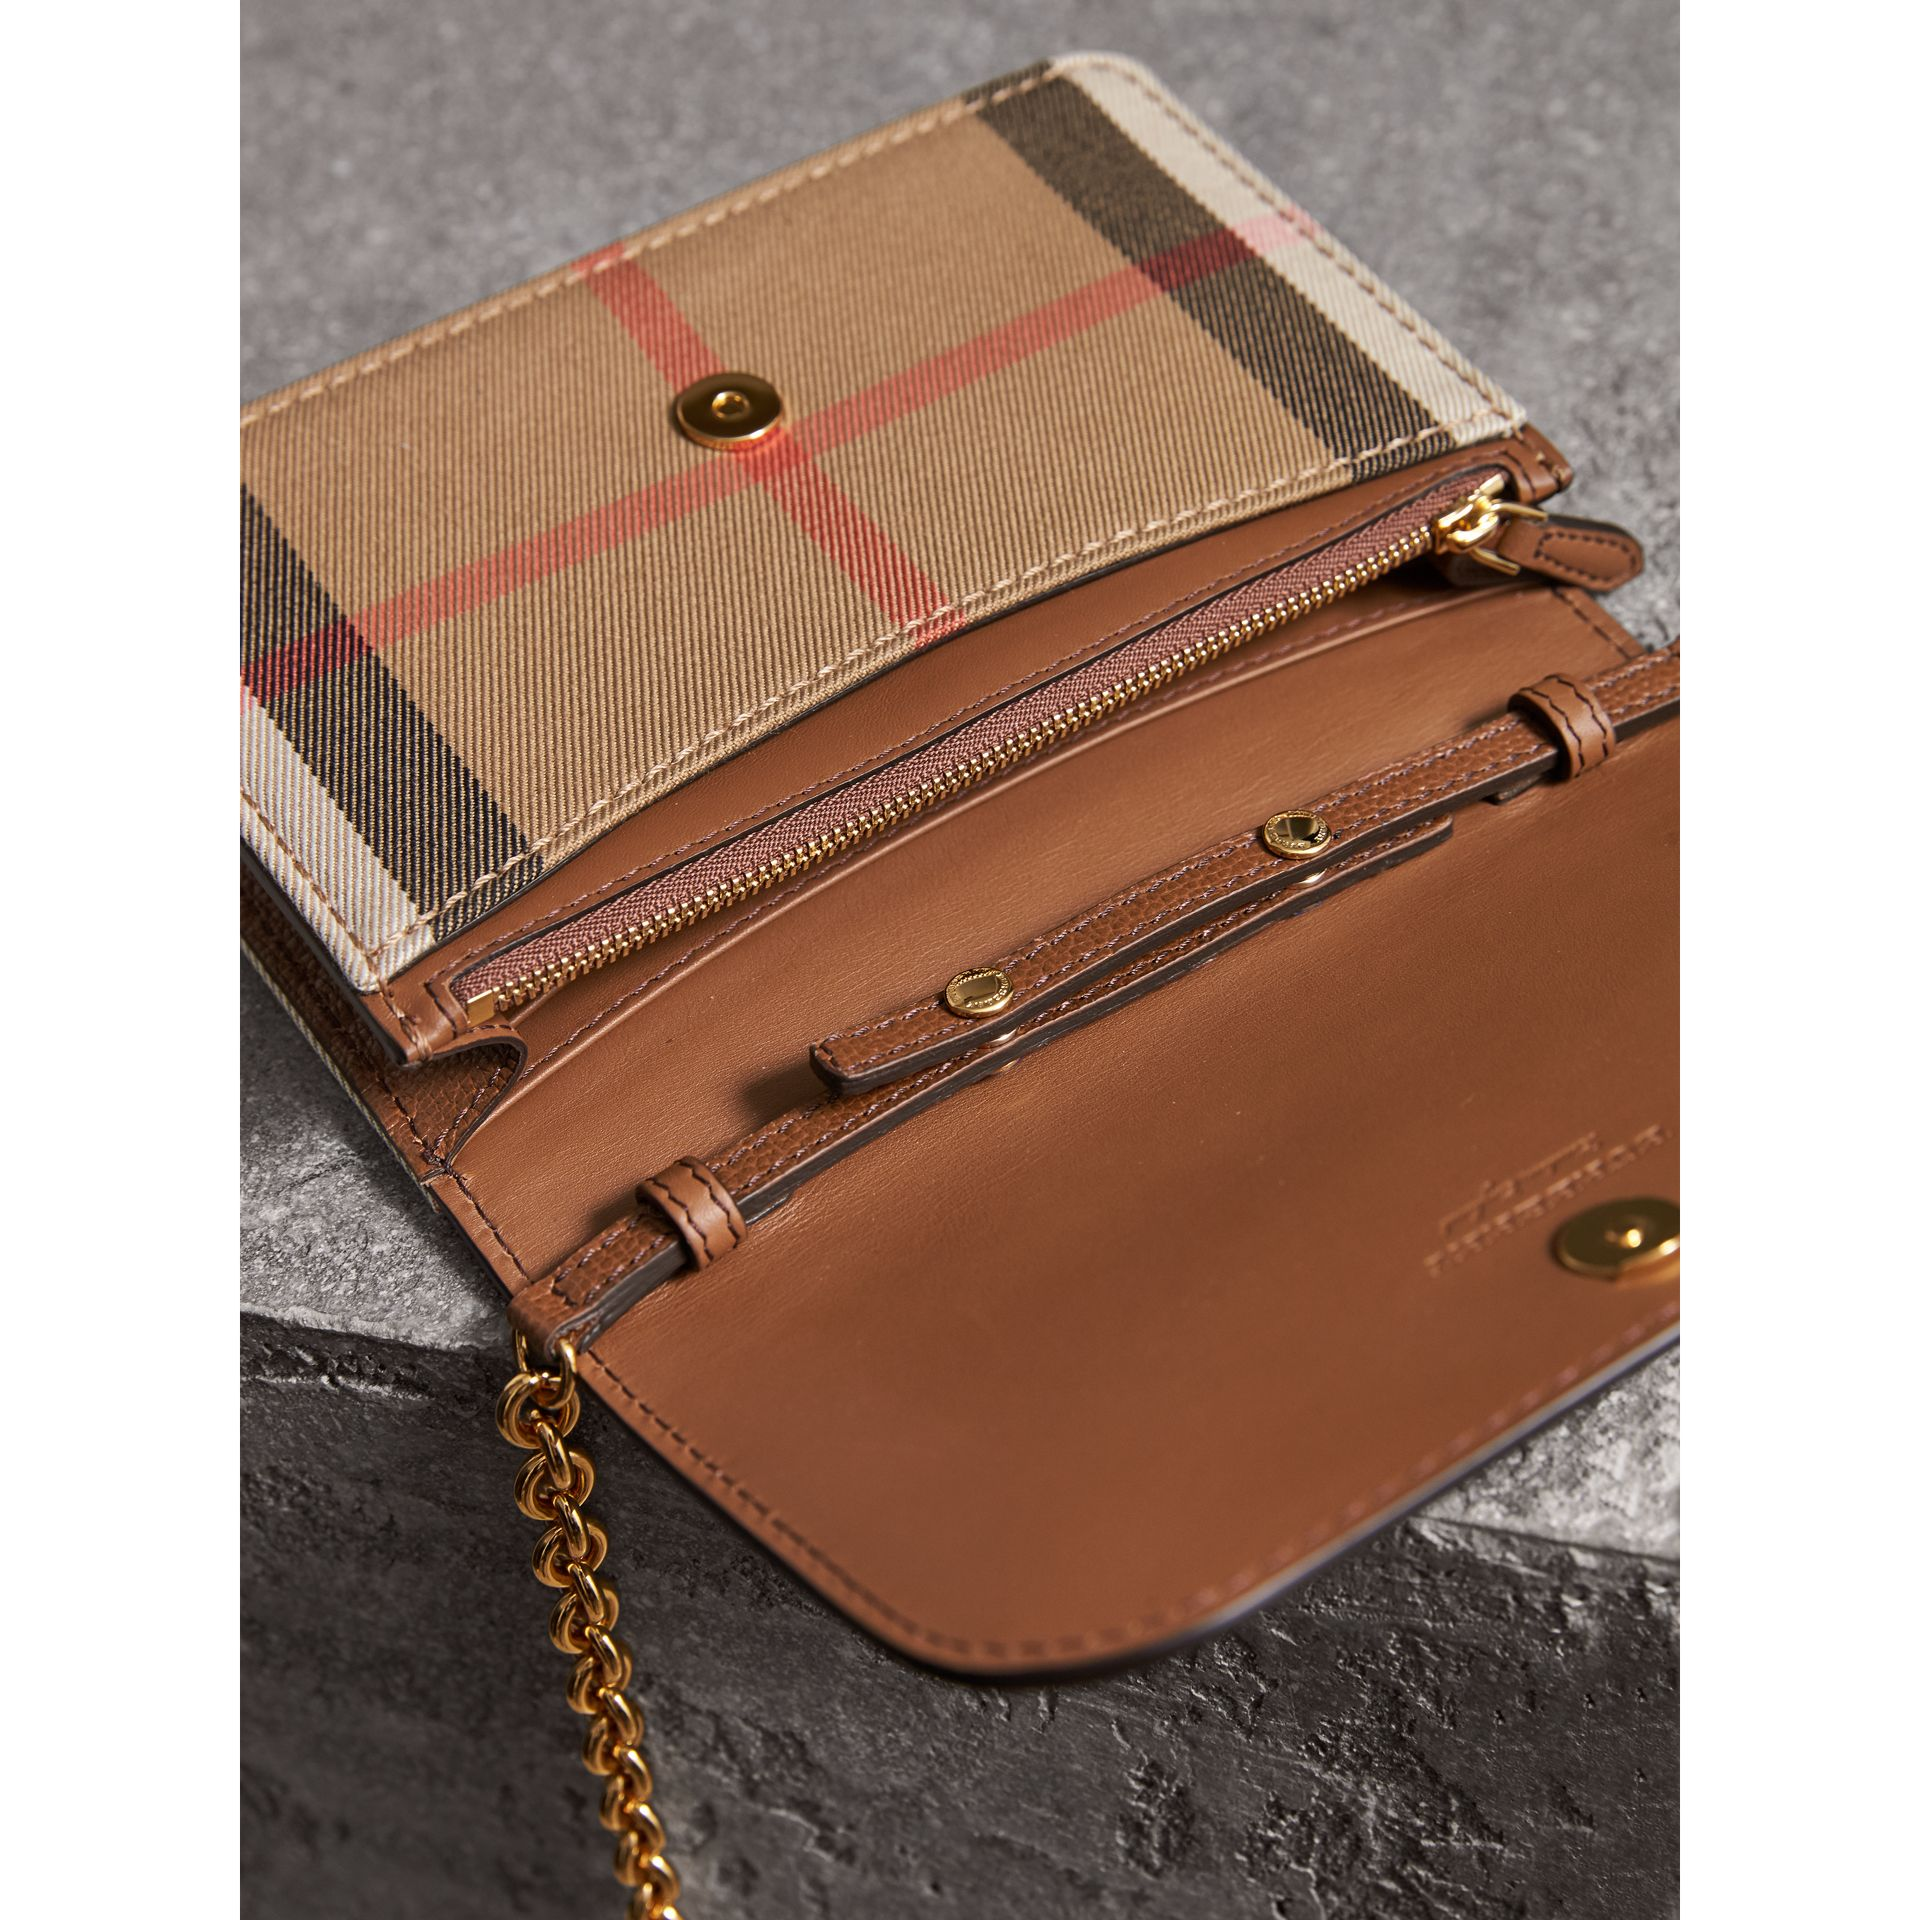 Leather and House Check Wallet with Detachable Strap in Tan - Women | Burberry United States - gallery image 5